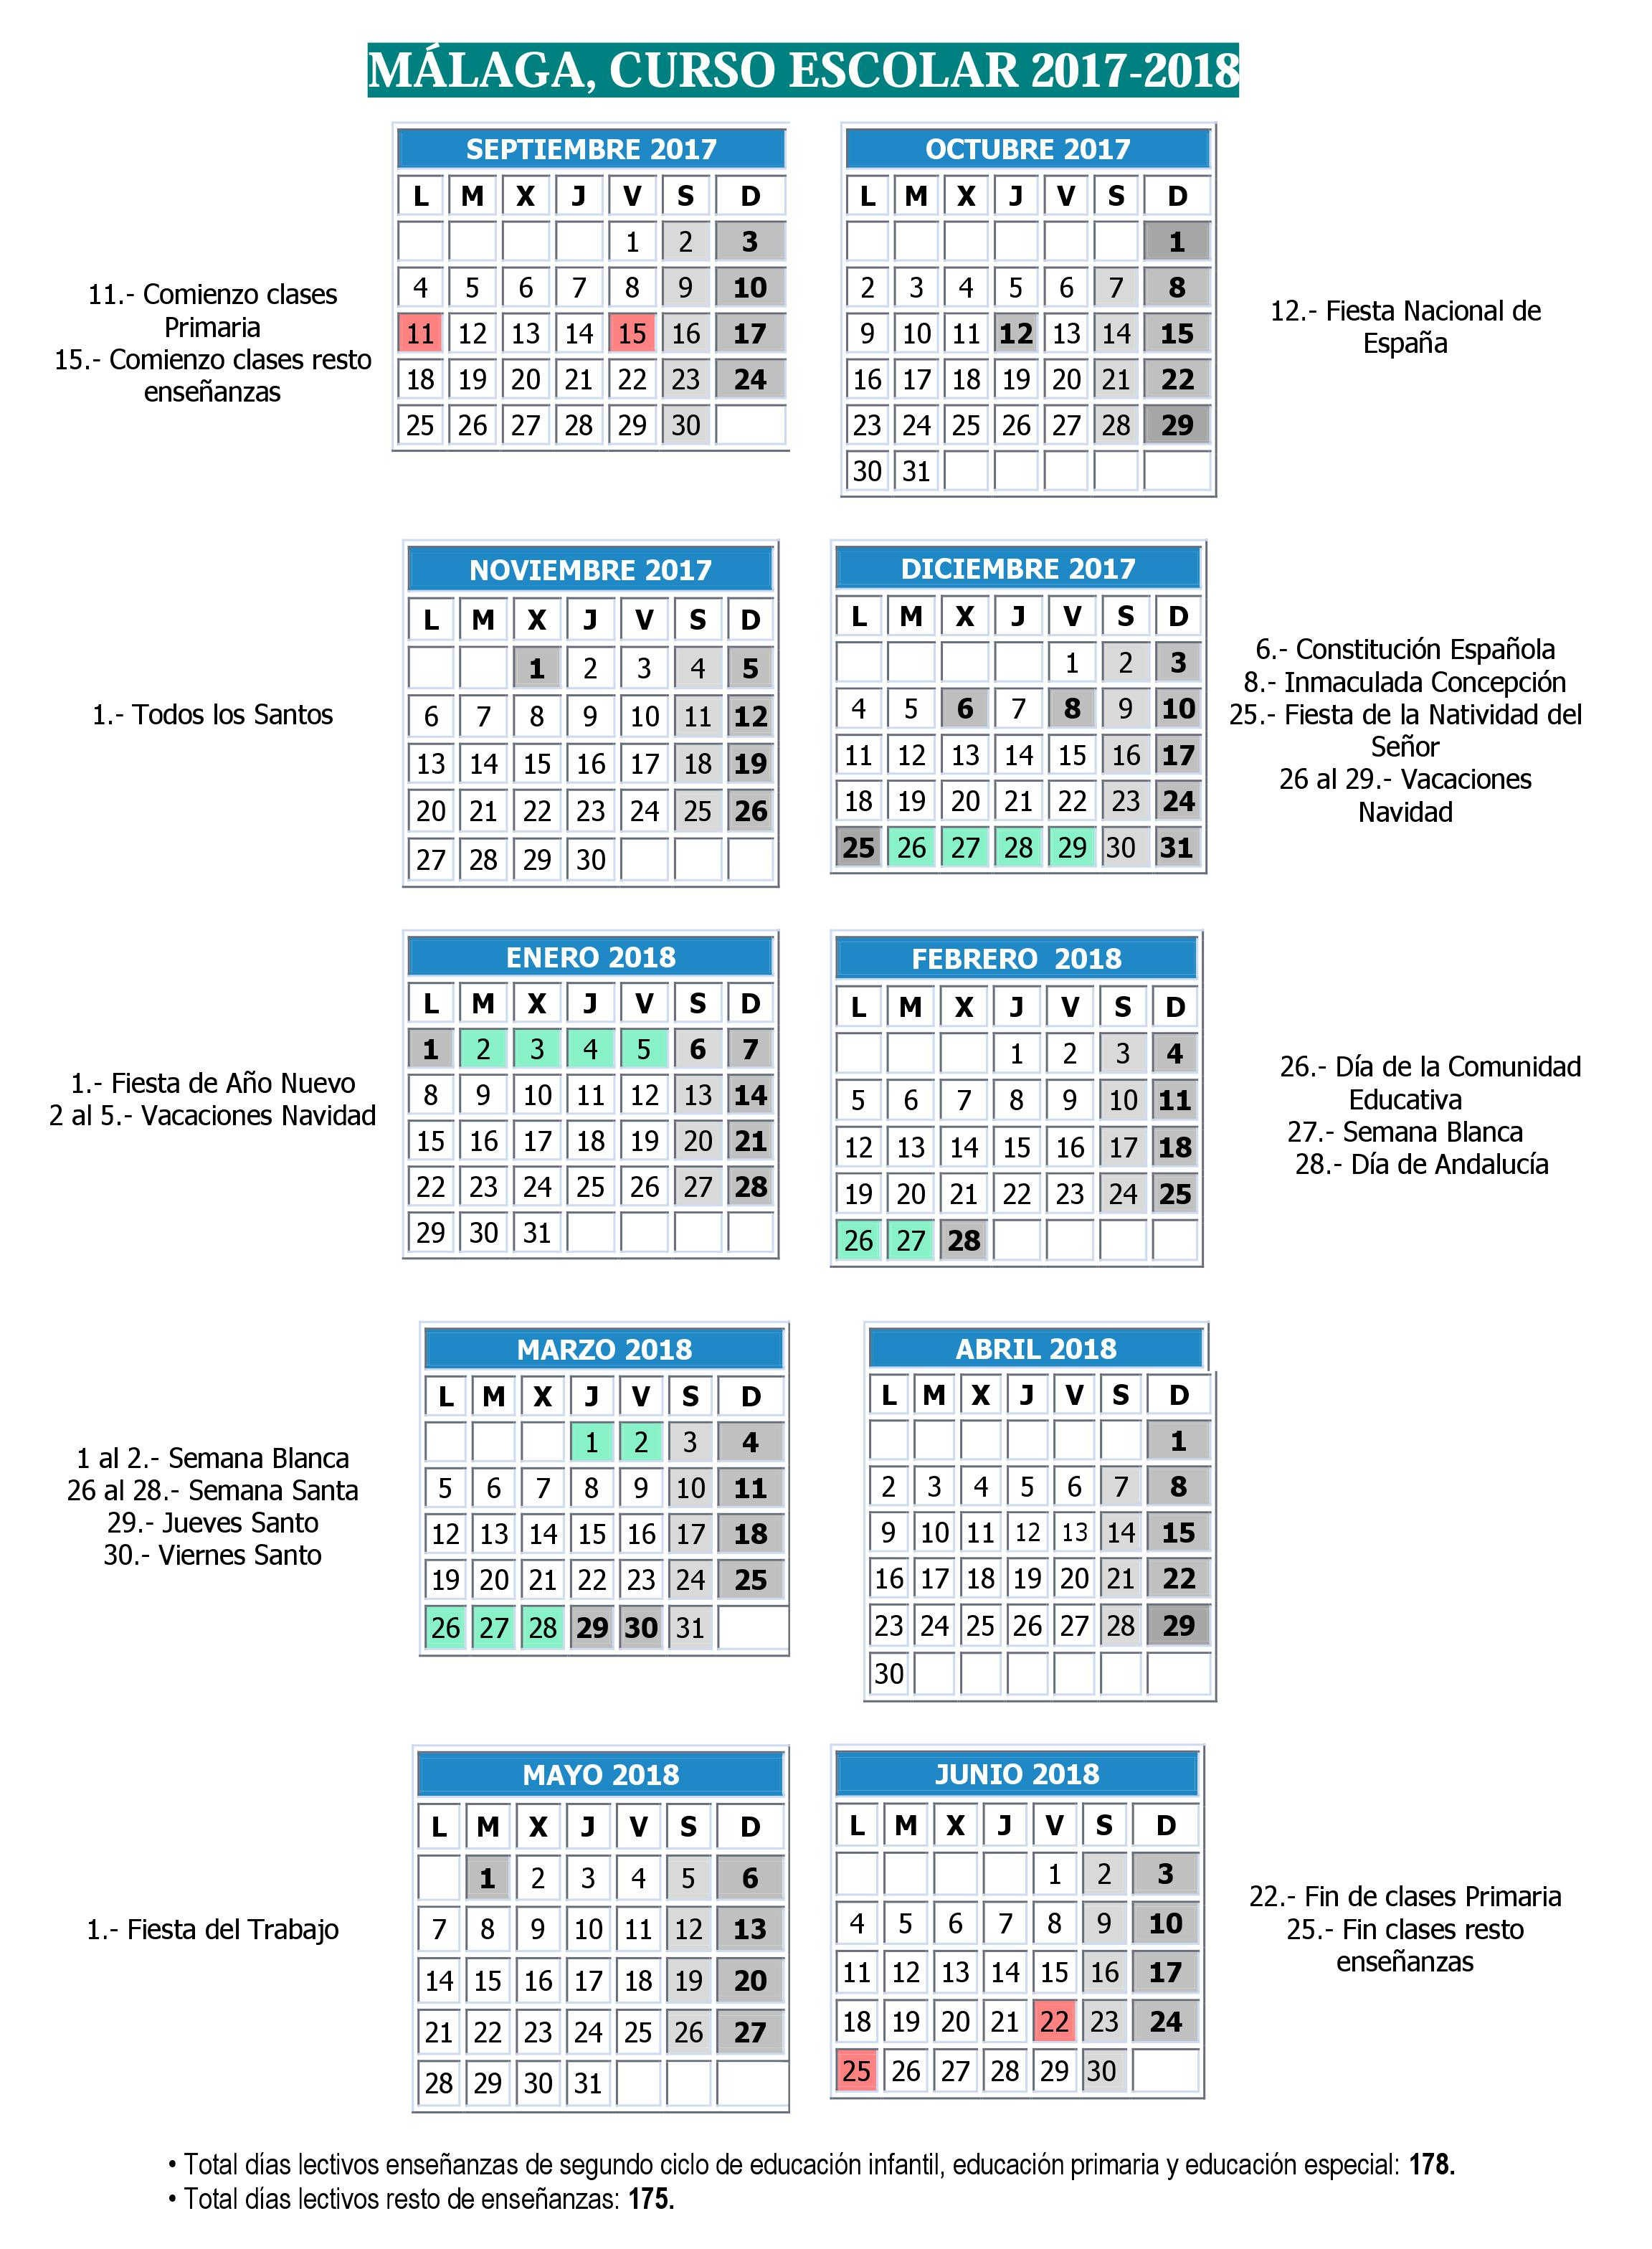 Imprimir Calendario Escolar 2017 Y 2019 Sep Actual Calendario Escolar Málaga 2017 2018 La Diversiva Gu­a De Ocio Of Imprimir Calendario Escolar 2017 Y 2019 Sep Más Recientes Instituto Tecnol³gico De Gustavo A Madero